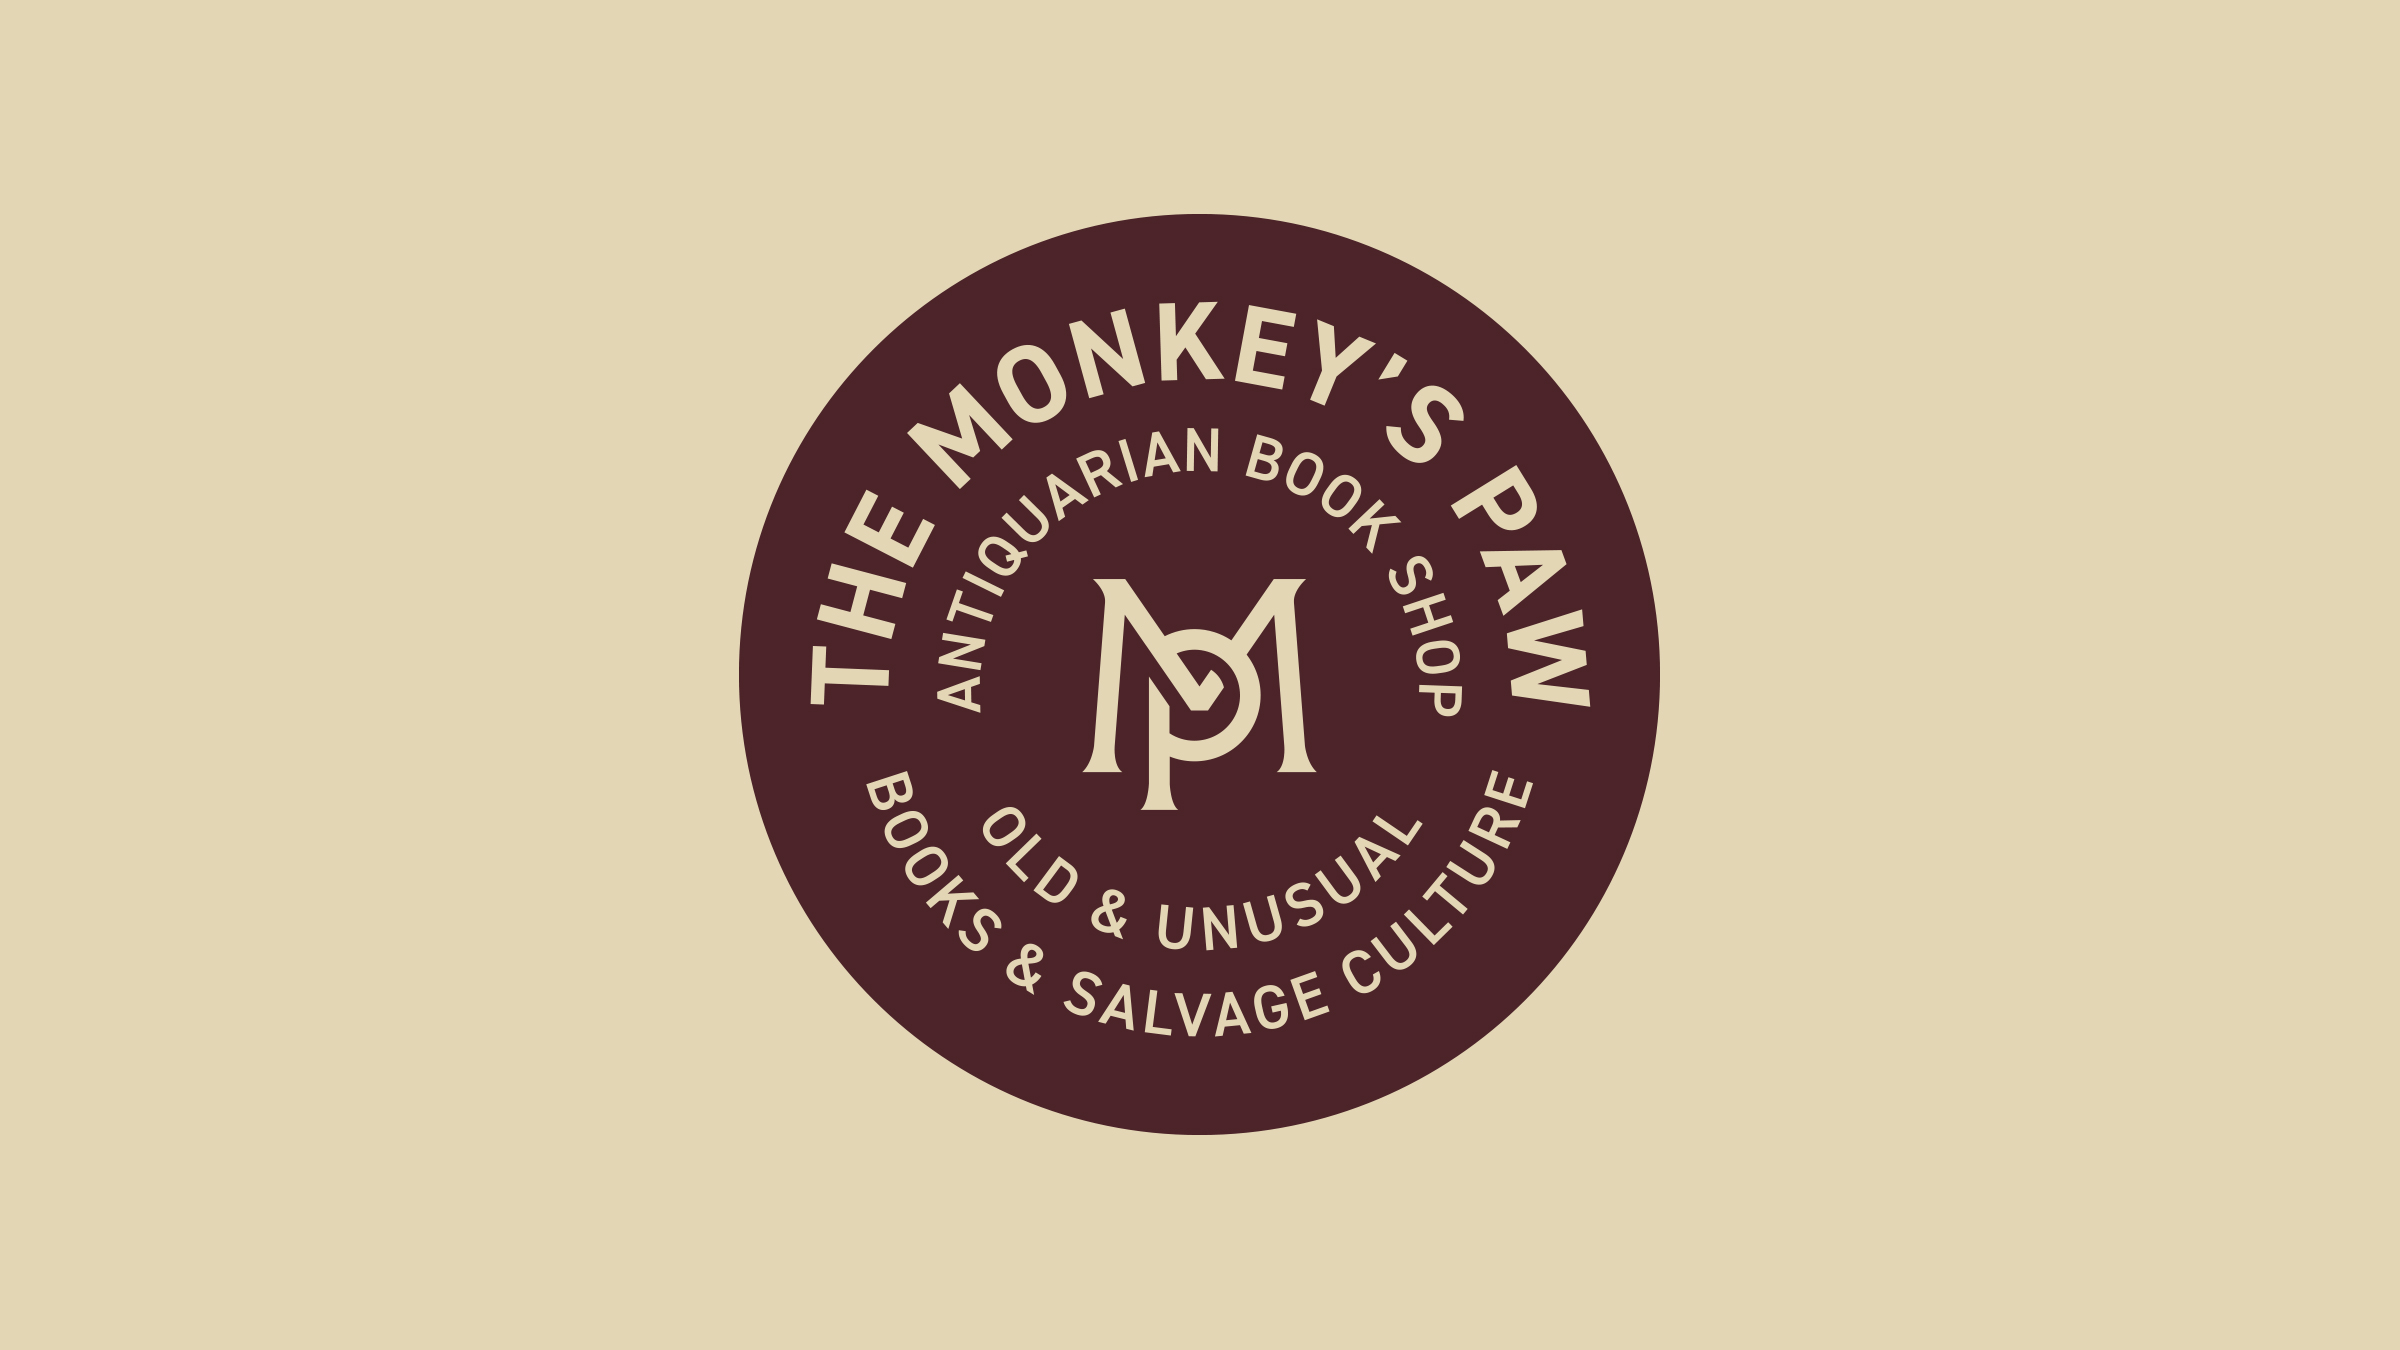 The Monkey's Paw brand logobadge maroon on cream